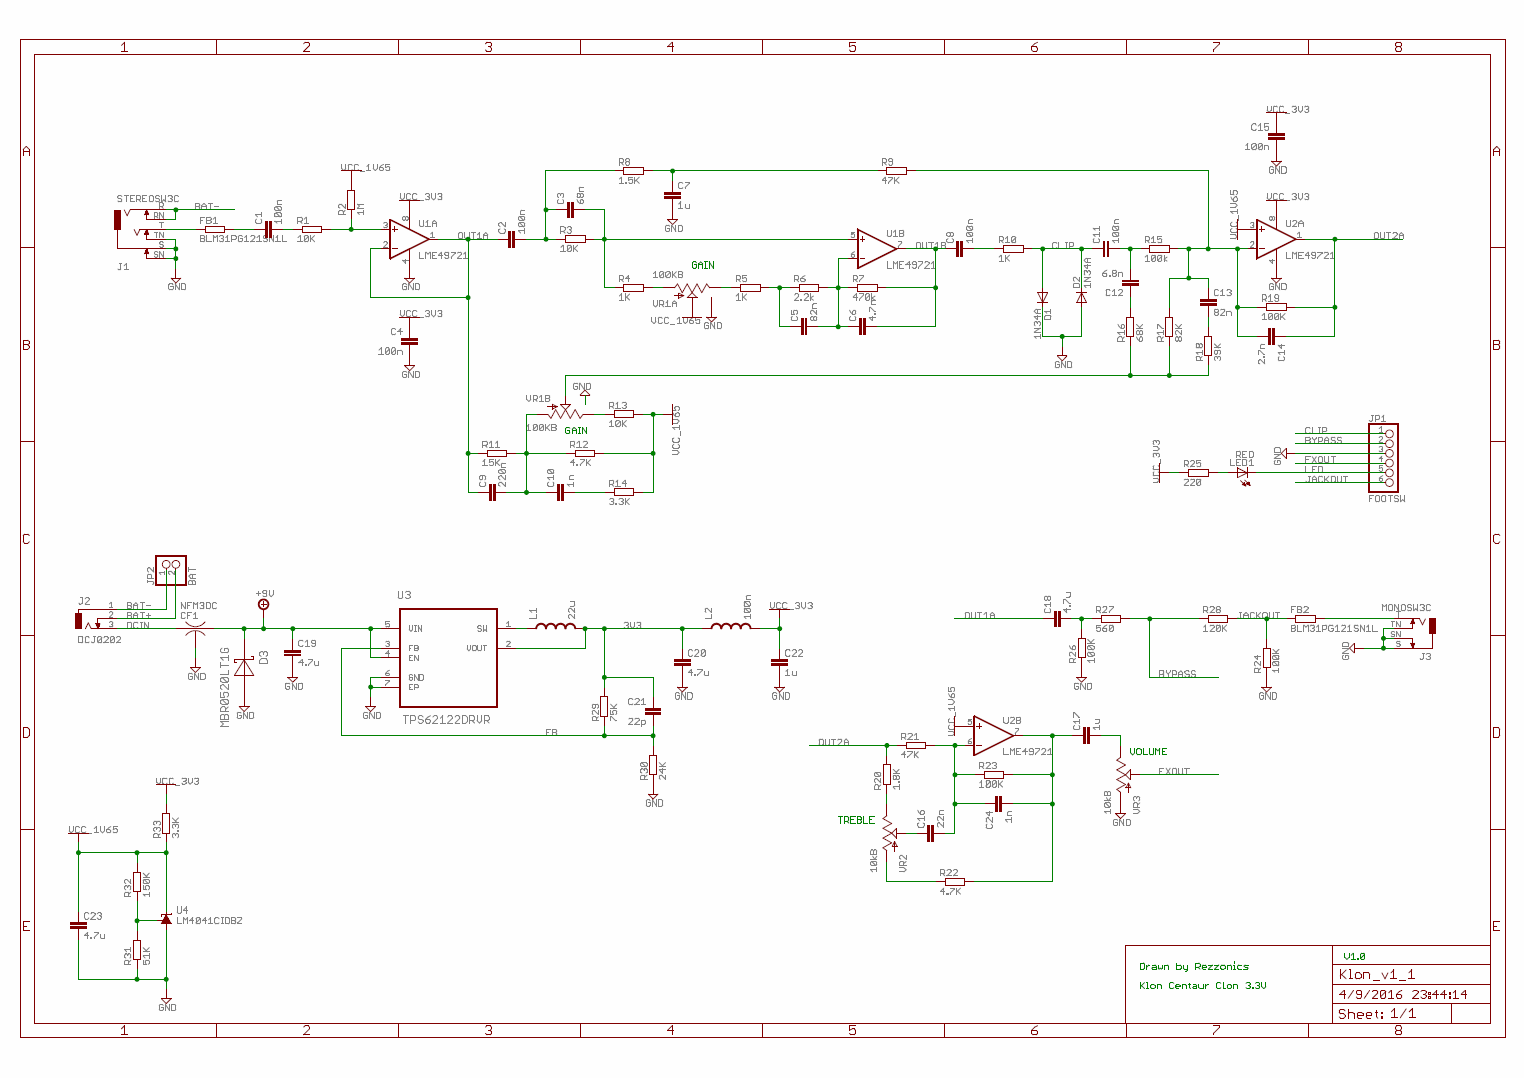 Rezzonics: Klon 3v3 Clone: Schematics and PCB layout